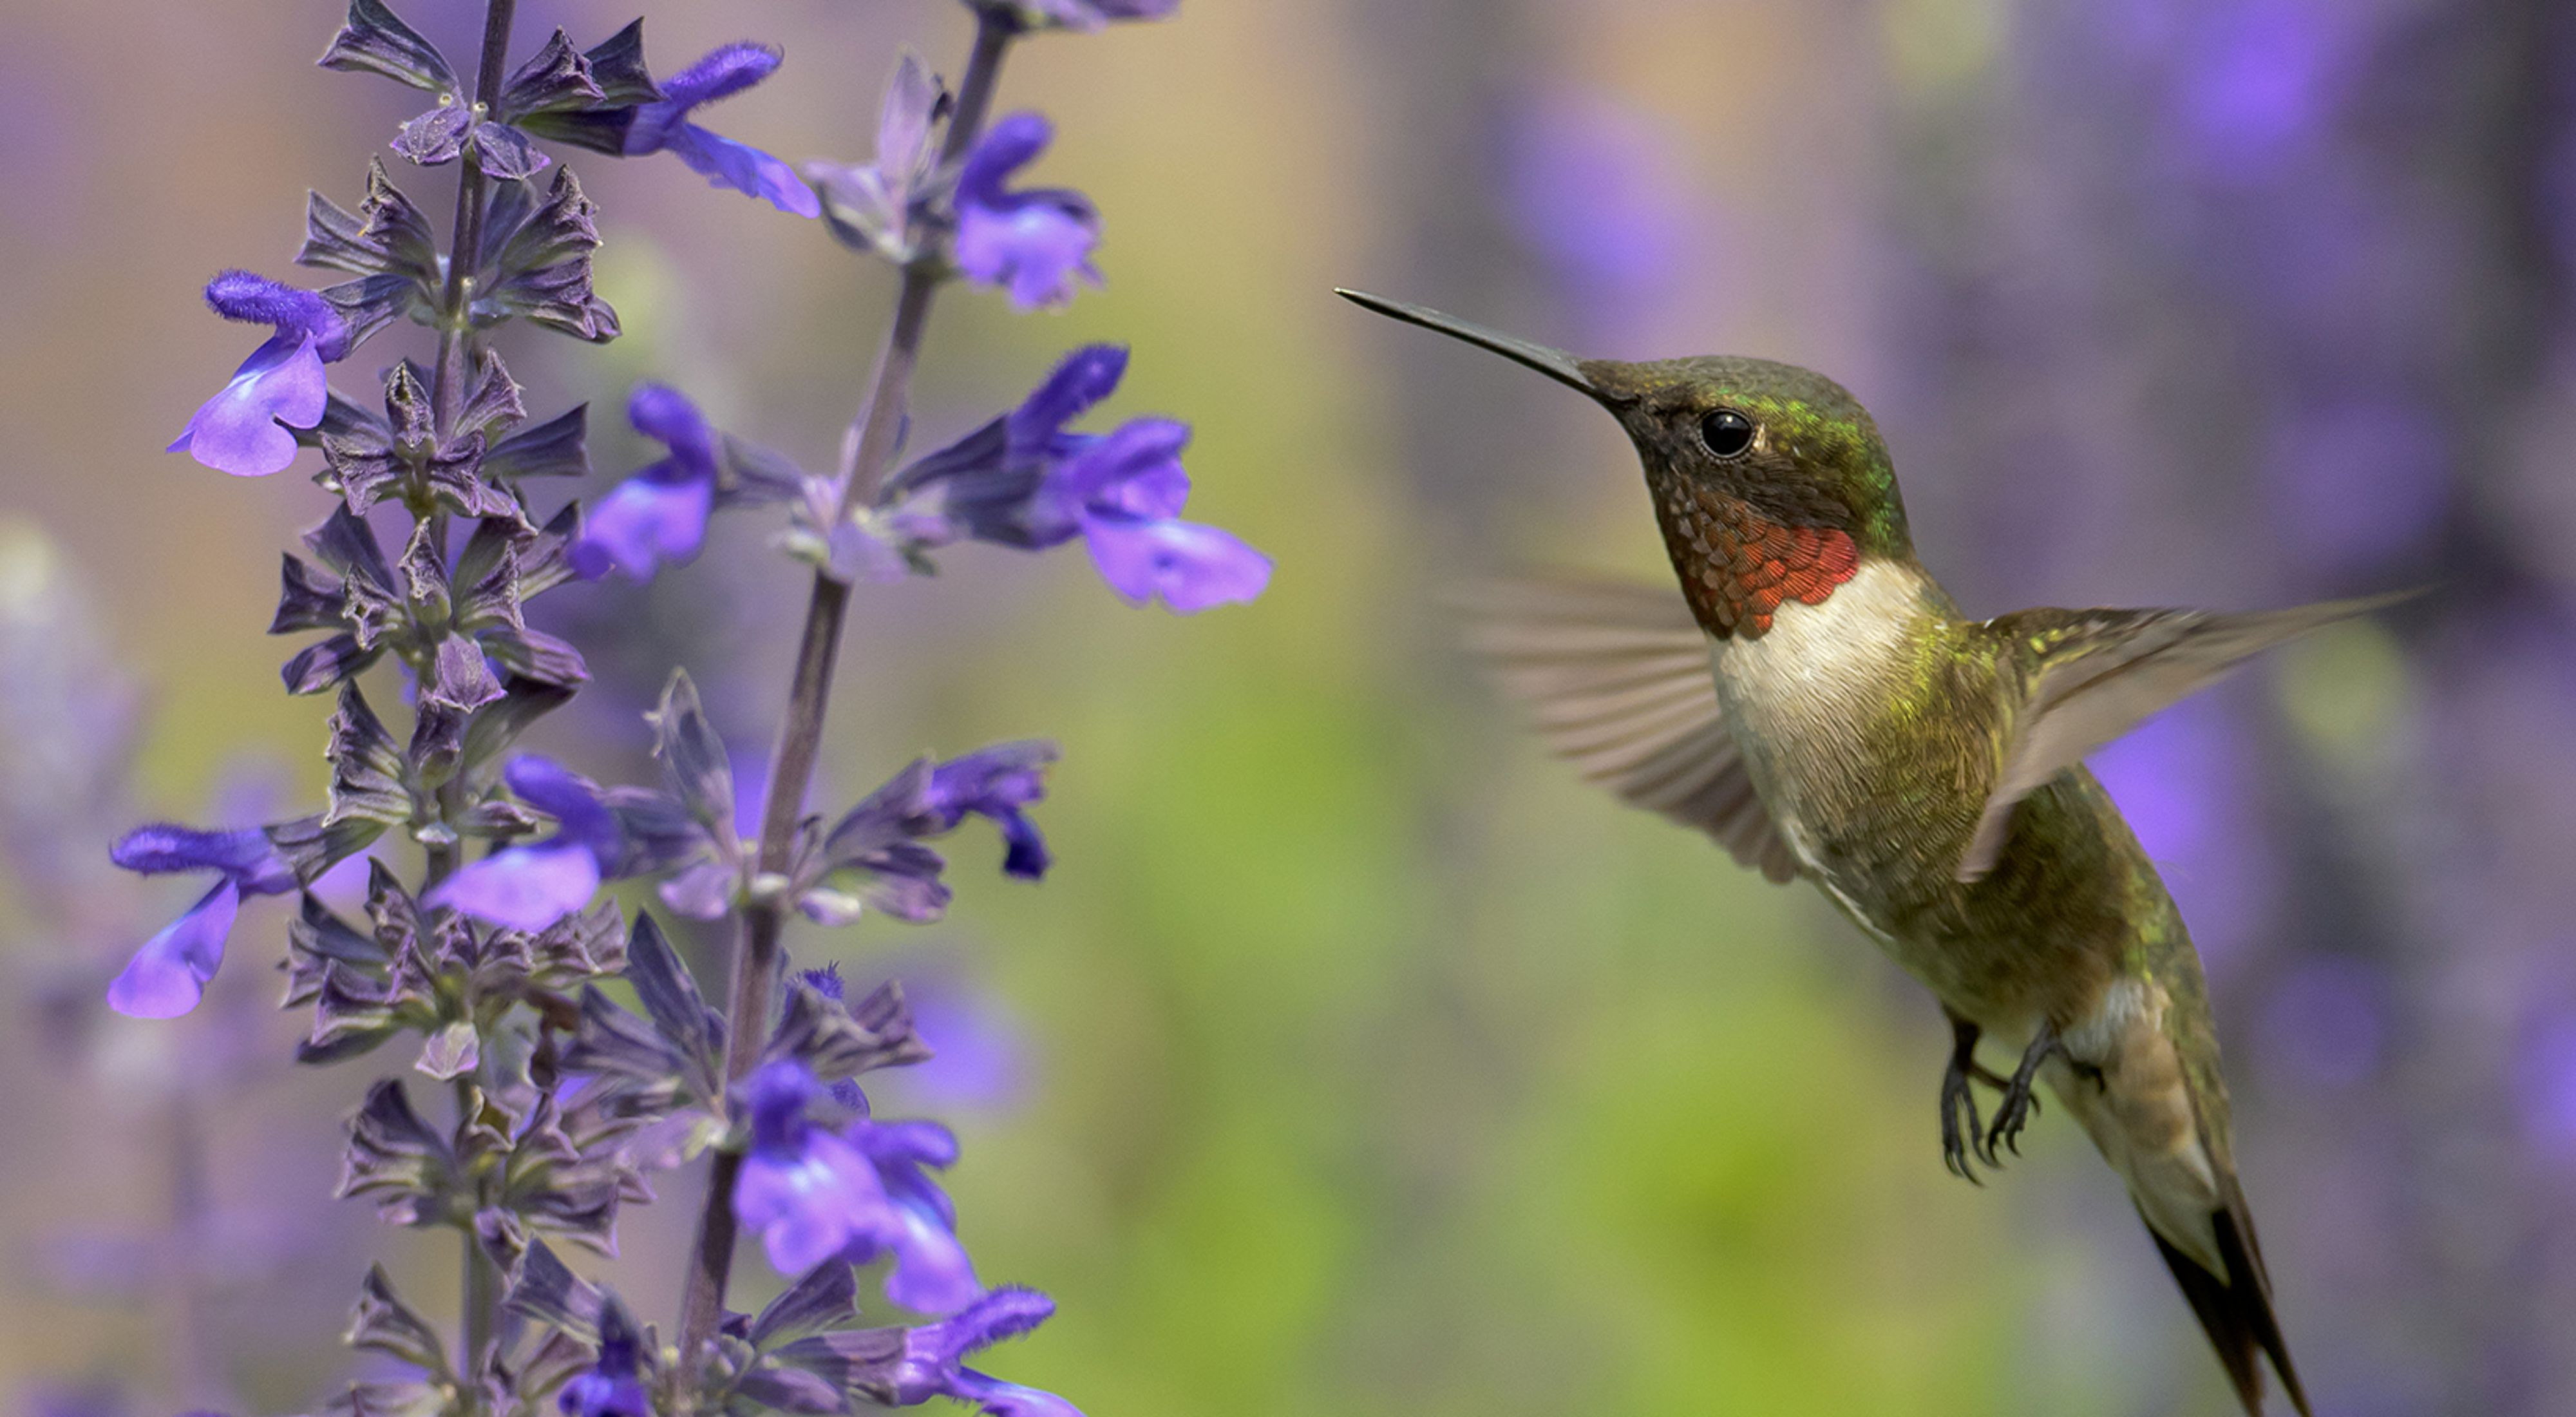 A hummingbird flies next to a purple flower.